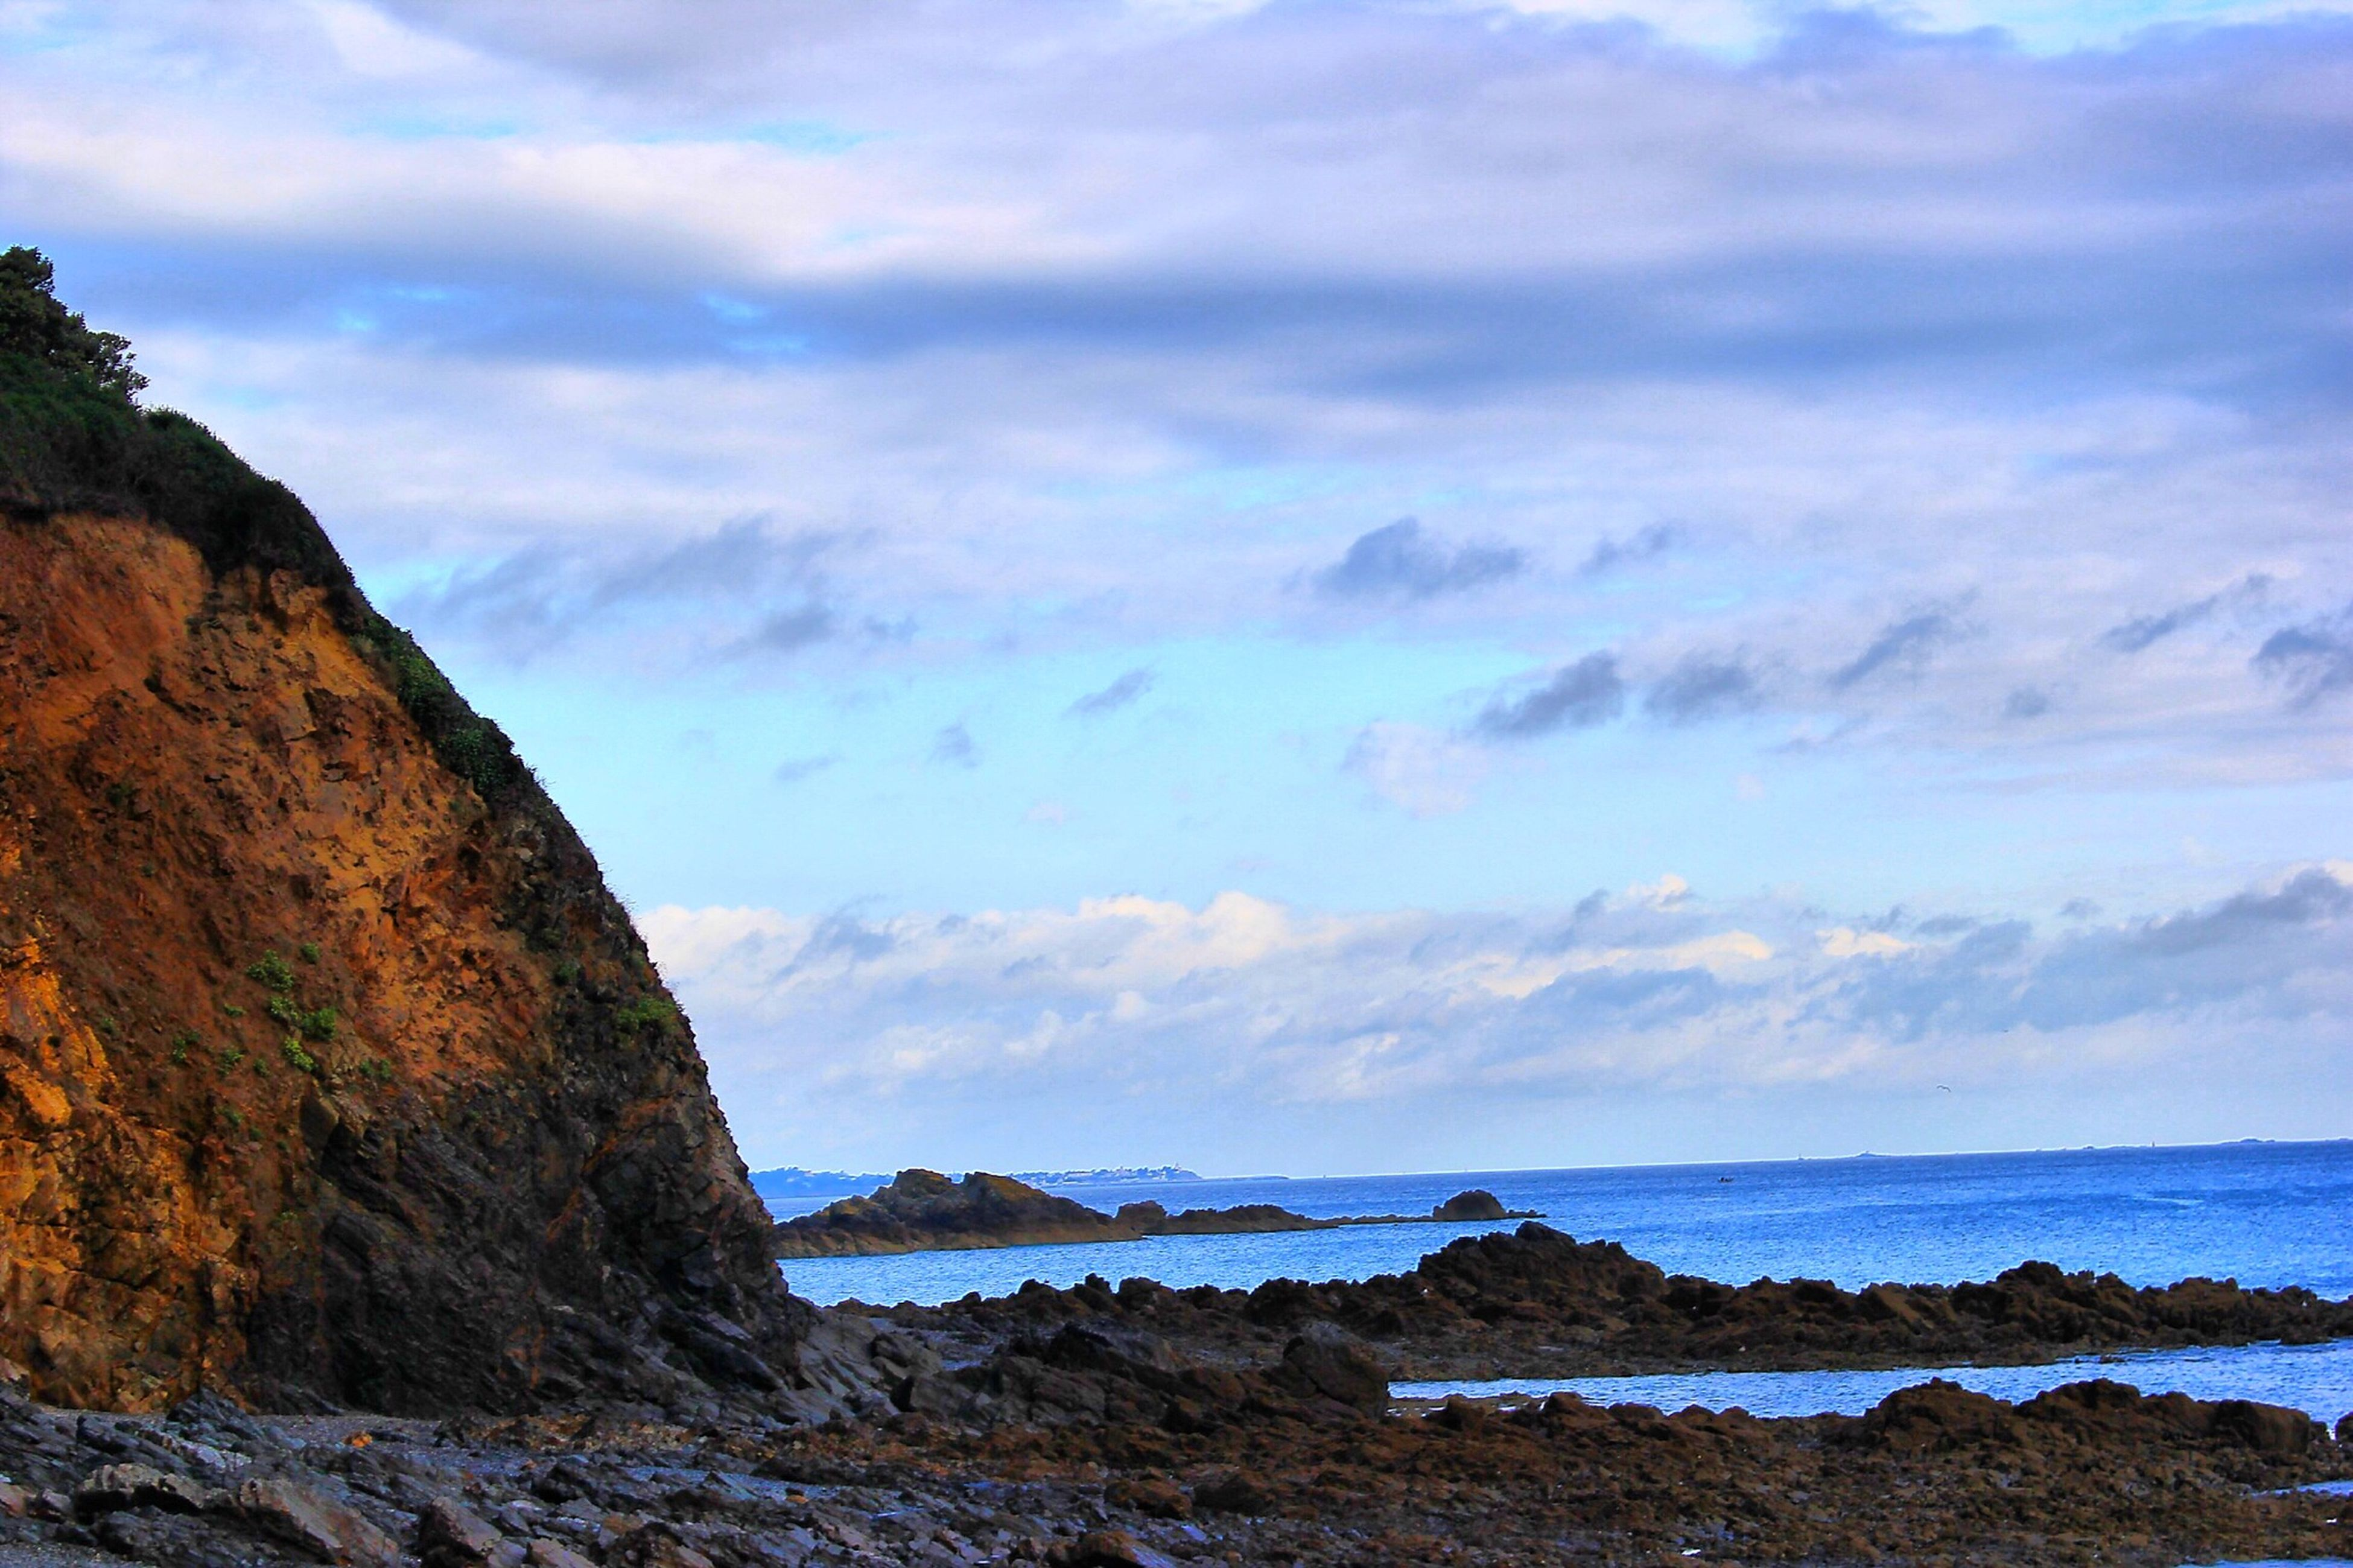 sea, horizon over water, water, sky, scenics, tranquil scene, beauty in nature, tranquility, beach, rock - object, nature, rock formation, shore, cloud - sky, cloud, idyllic, coastline, rock, cliff, cloudy